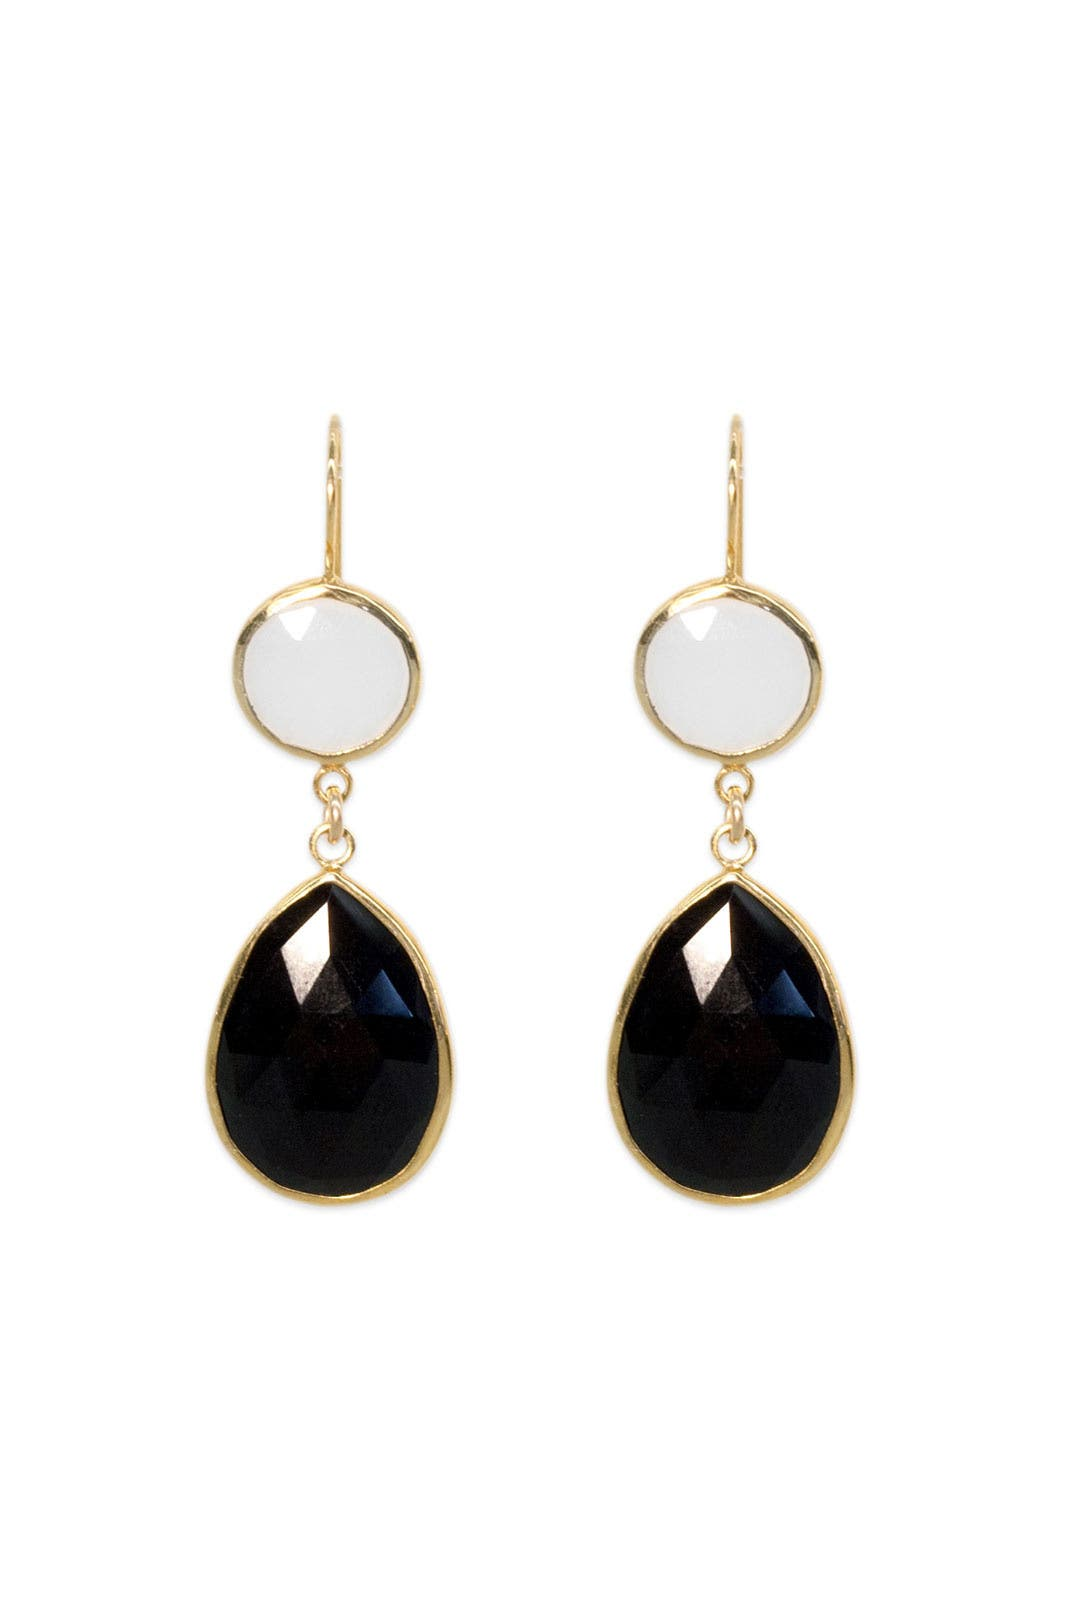 Half Moon Double Drop Earrings by Margaret Elizabeth